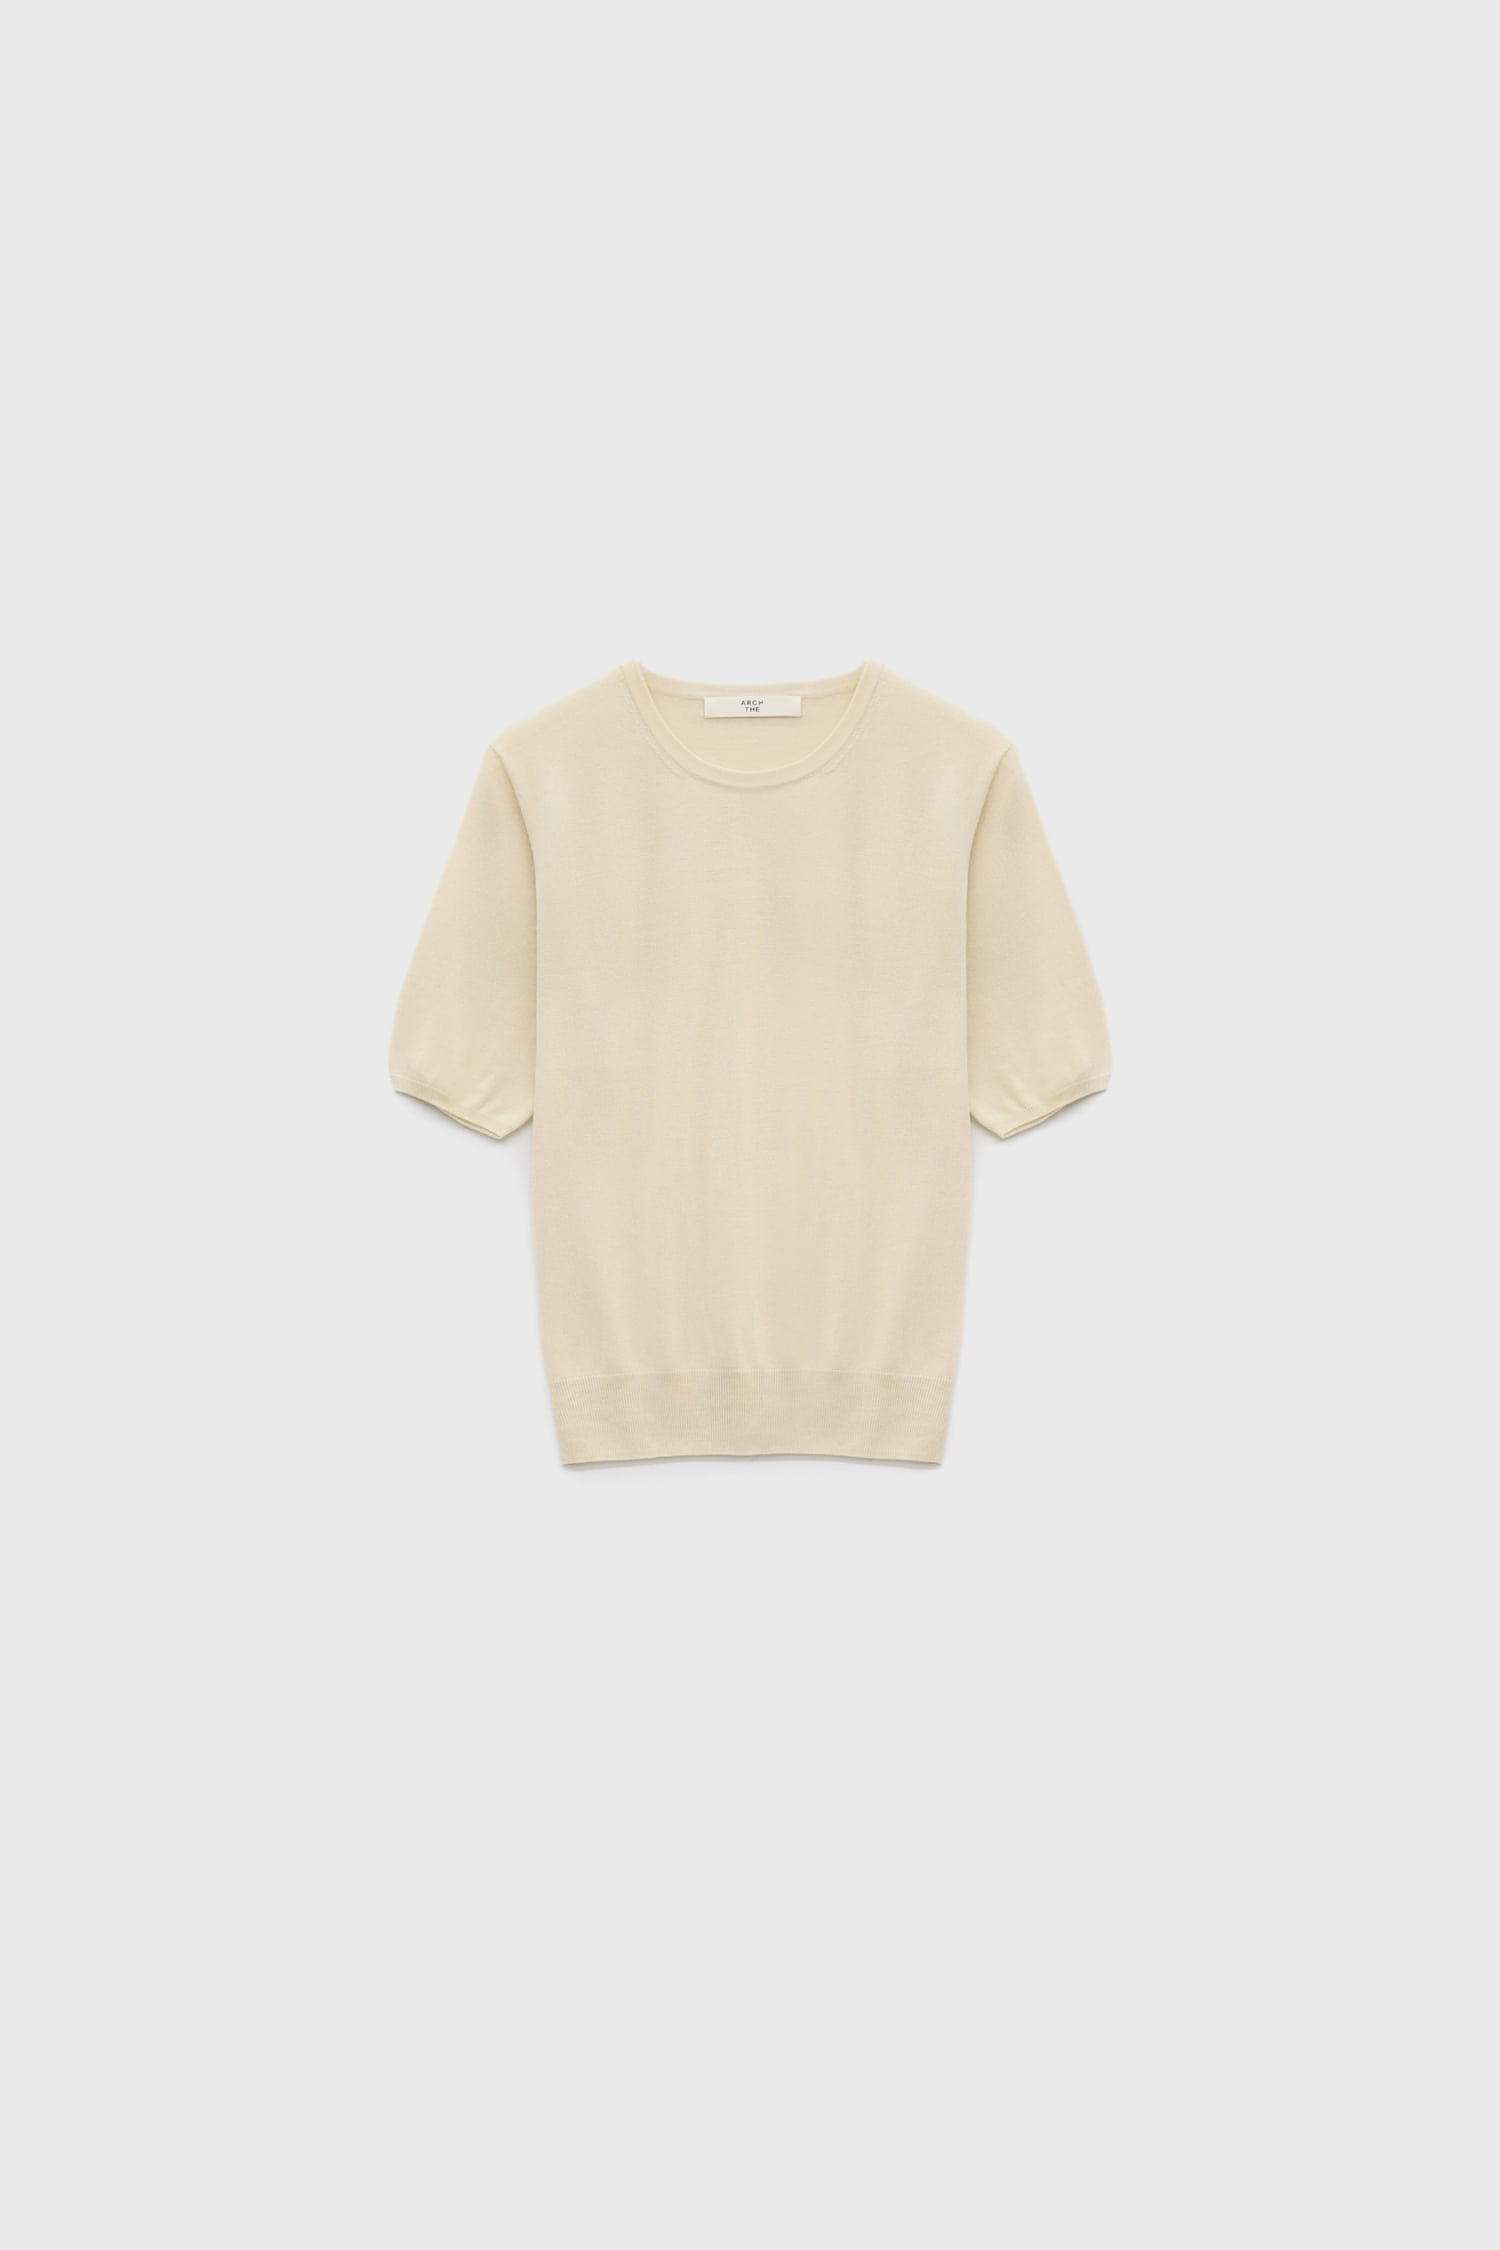 Rround neck short-sleeved sweater